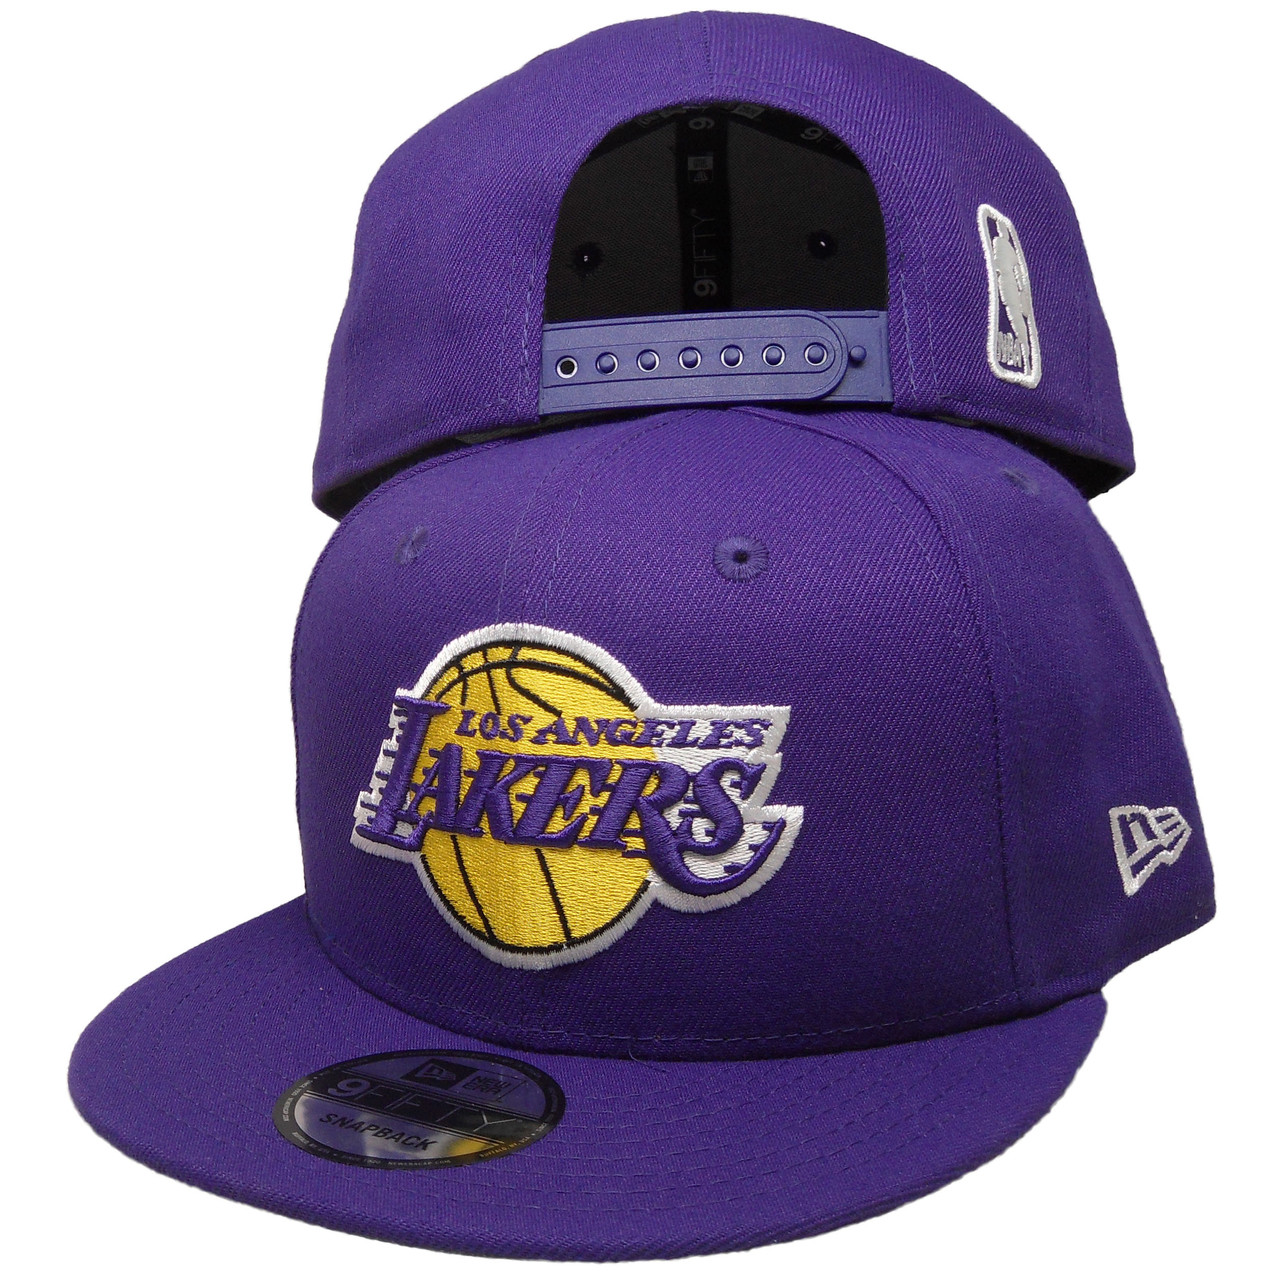 separation shoes 920cc 0f205 Los Angeles Lakers New Era Basic 9Fifty Snapback -Purple, Yellow, White -  ECapsUnlimited.com